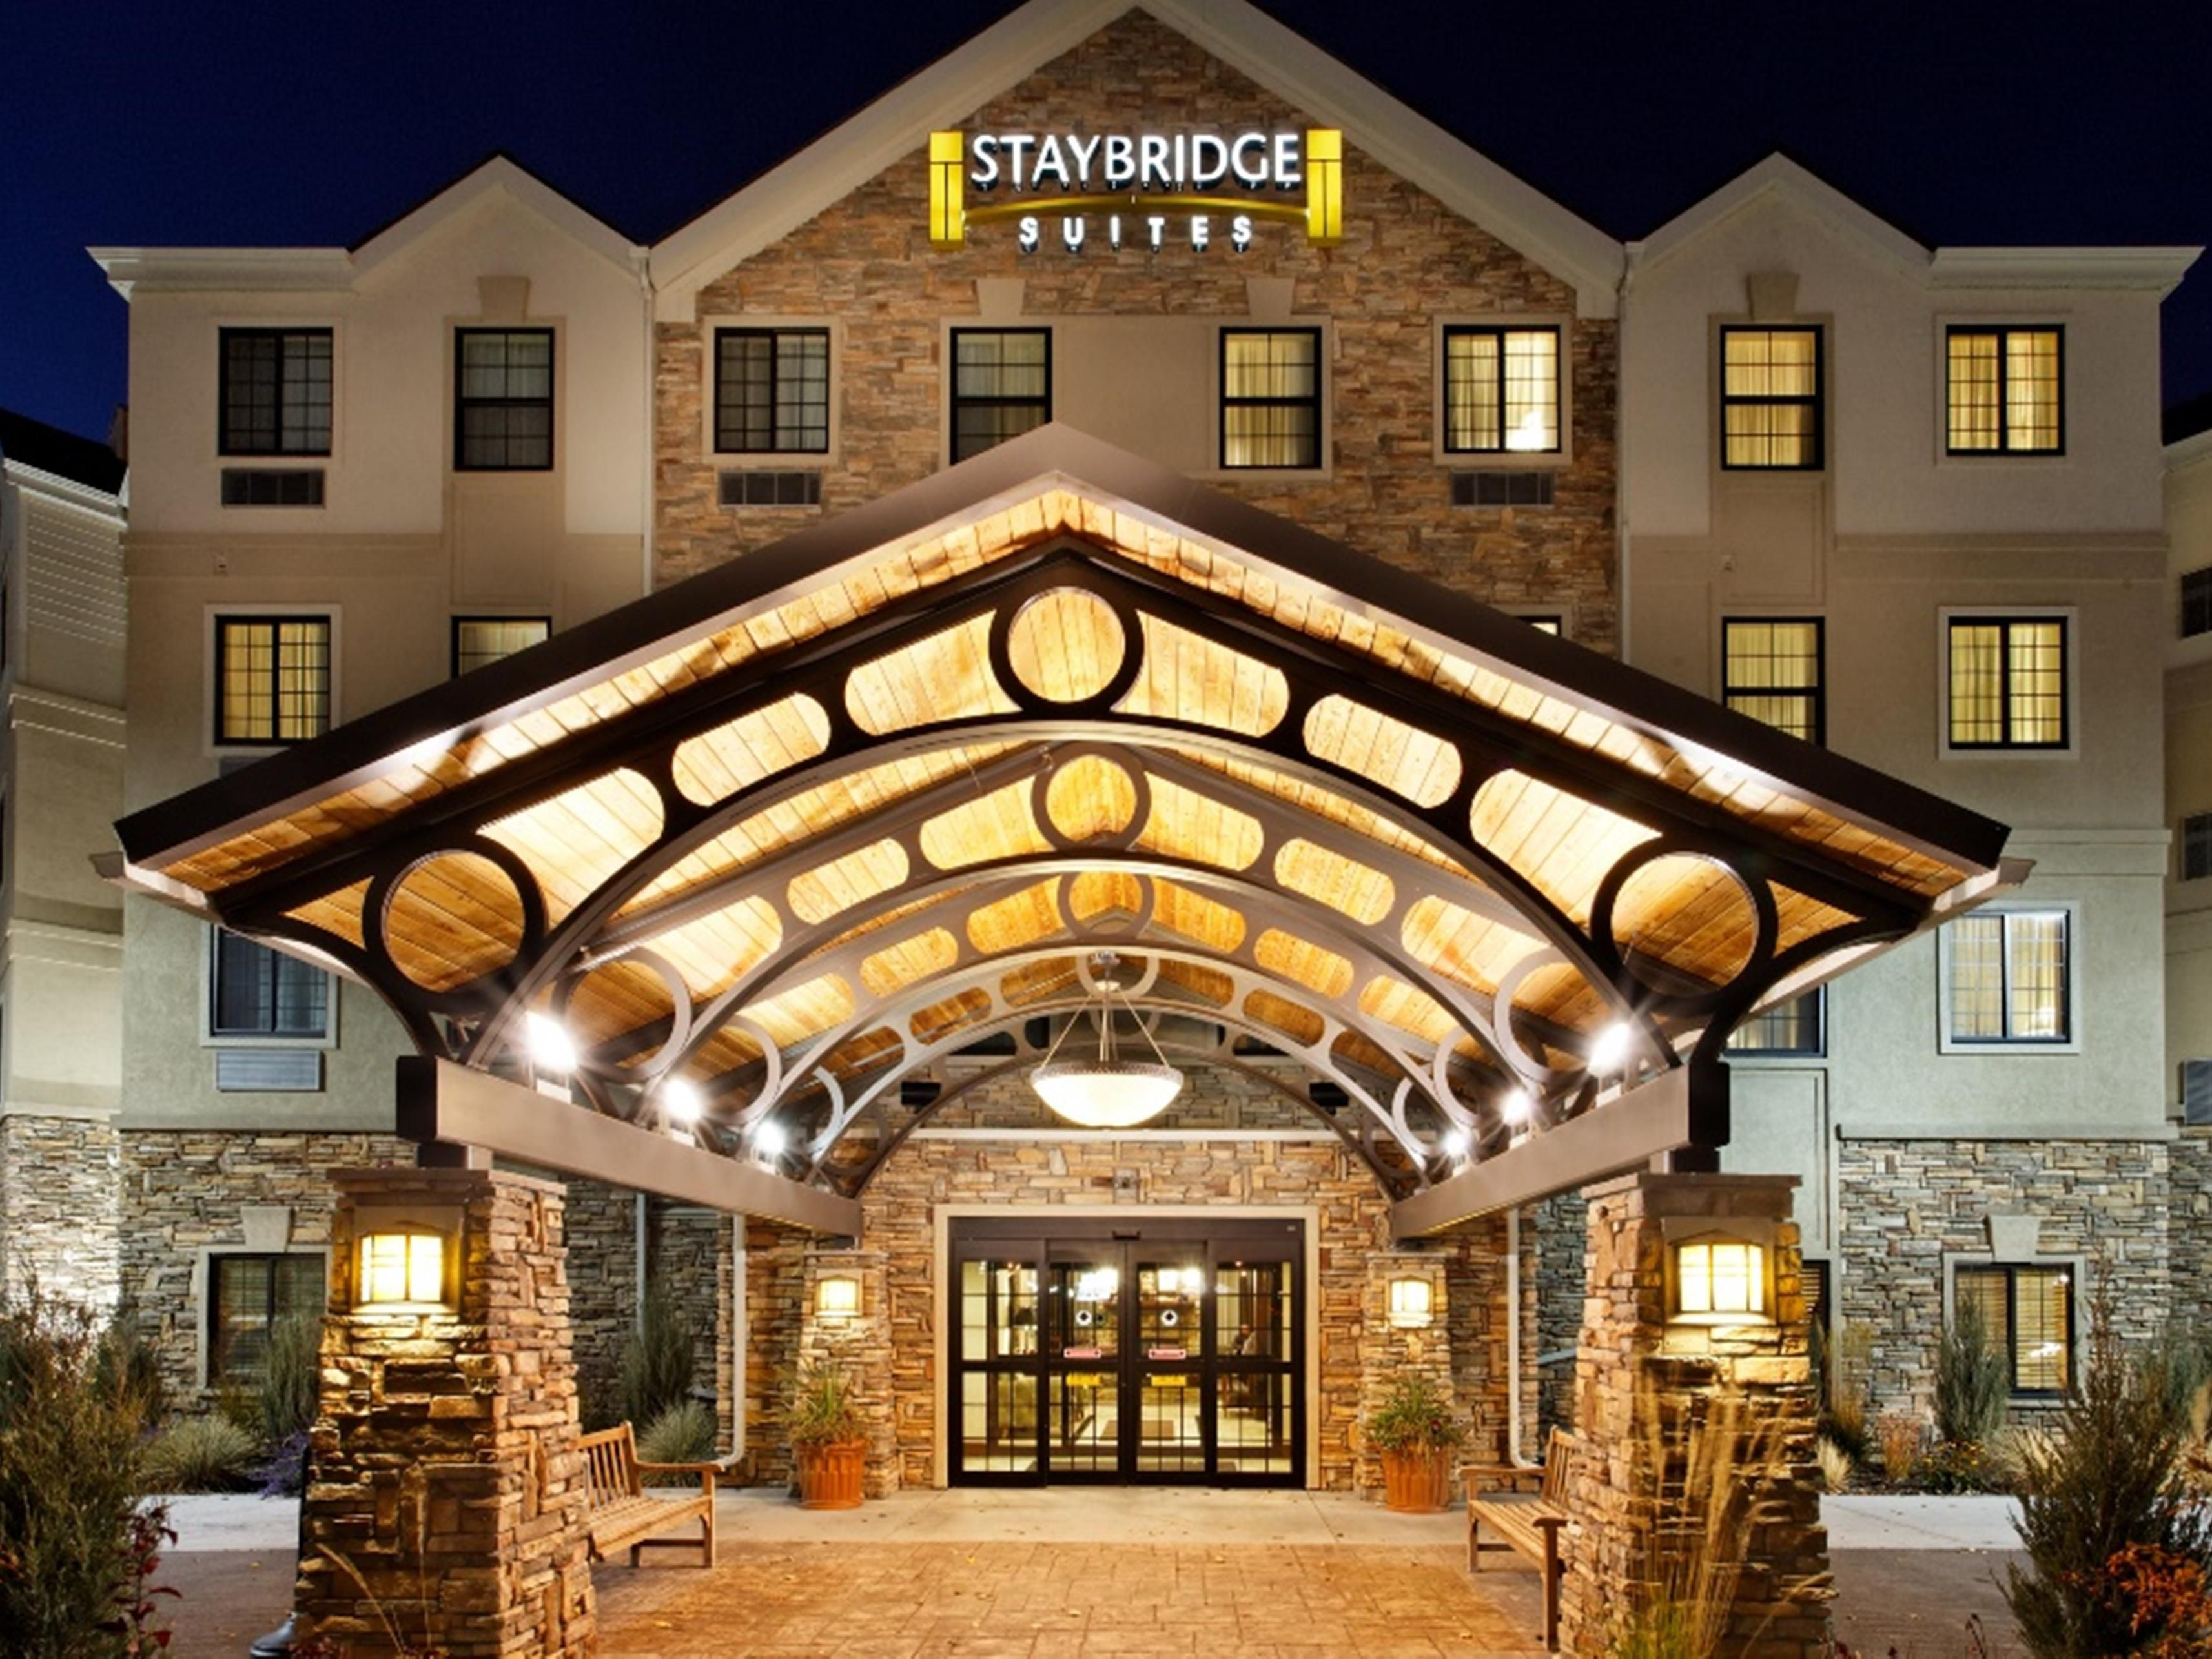 Rossford Hotels: Staybridge Suites Toledo - Rossford - Perrysburg ...